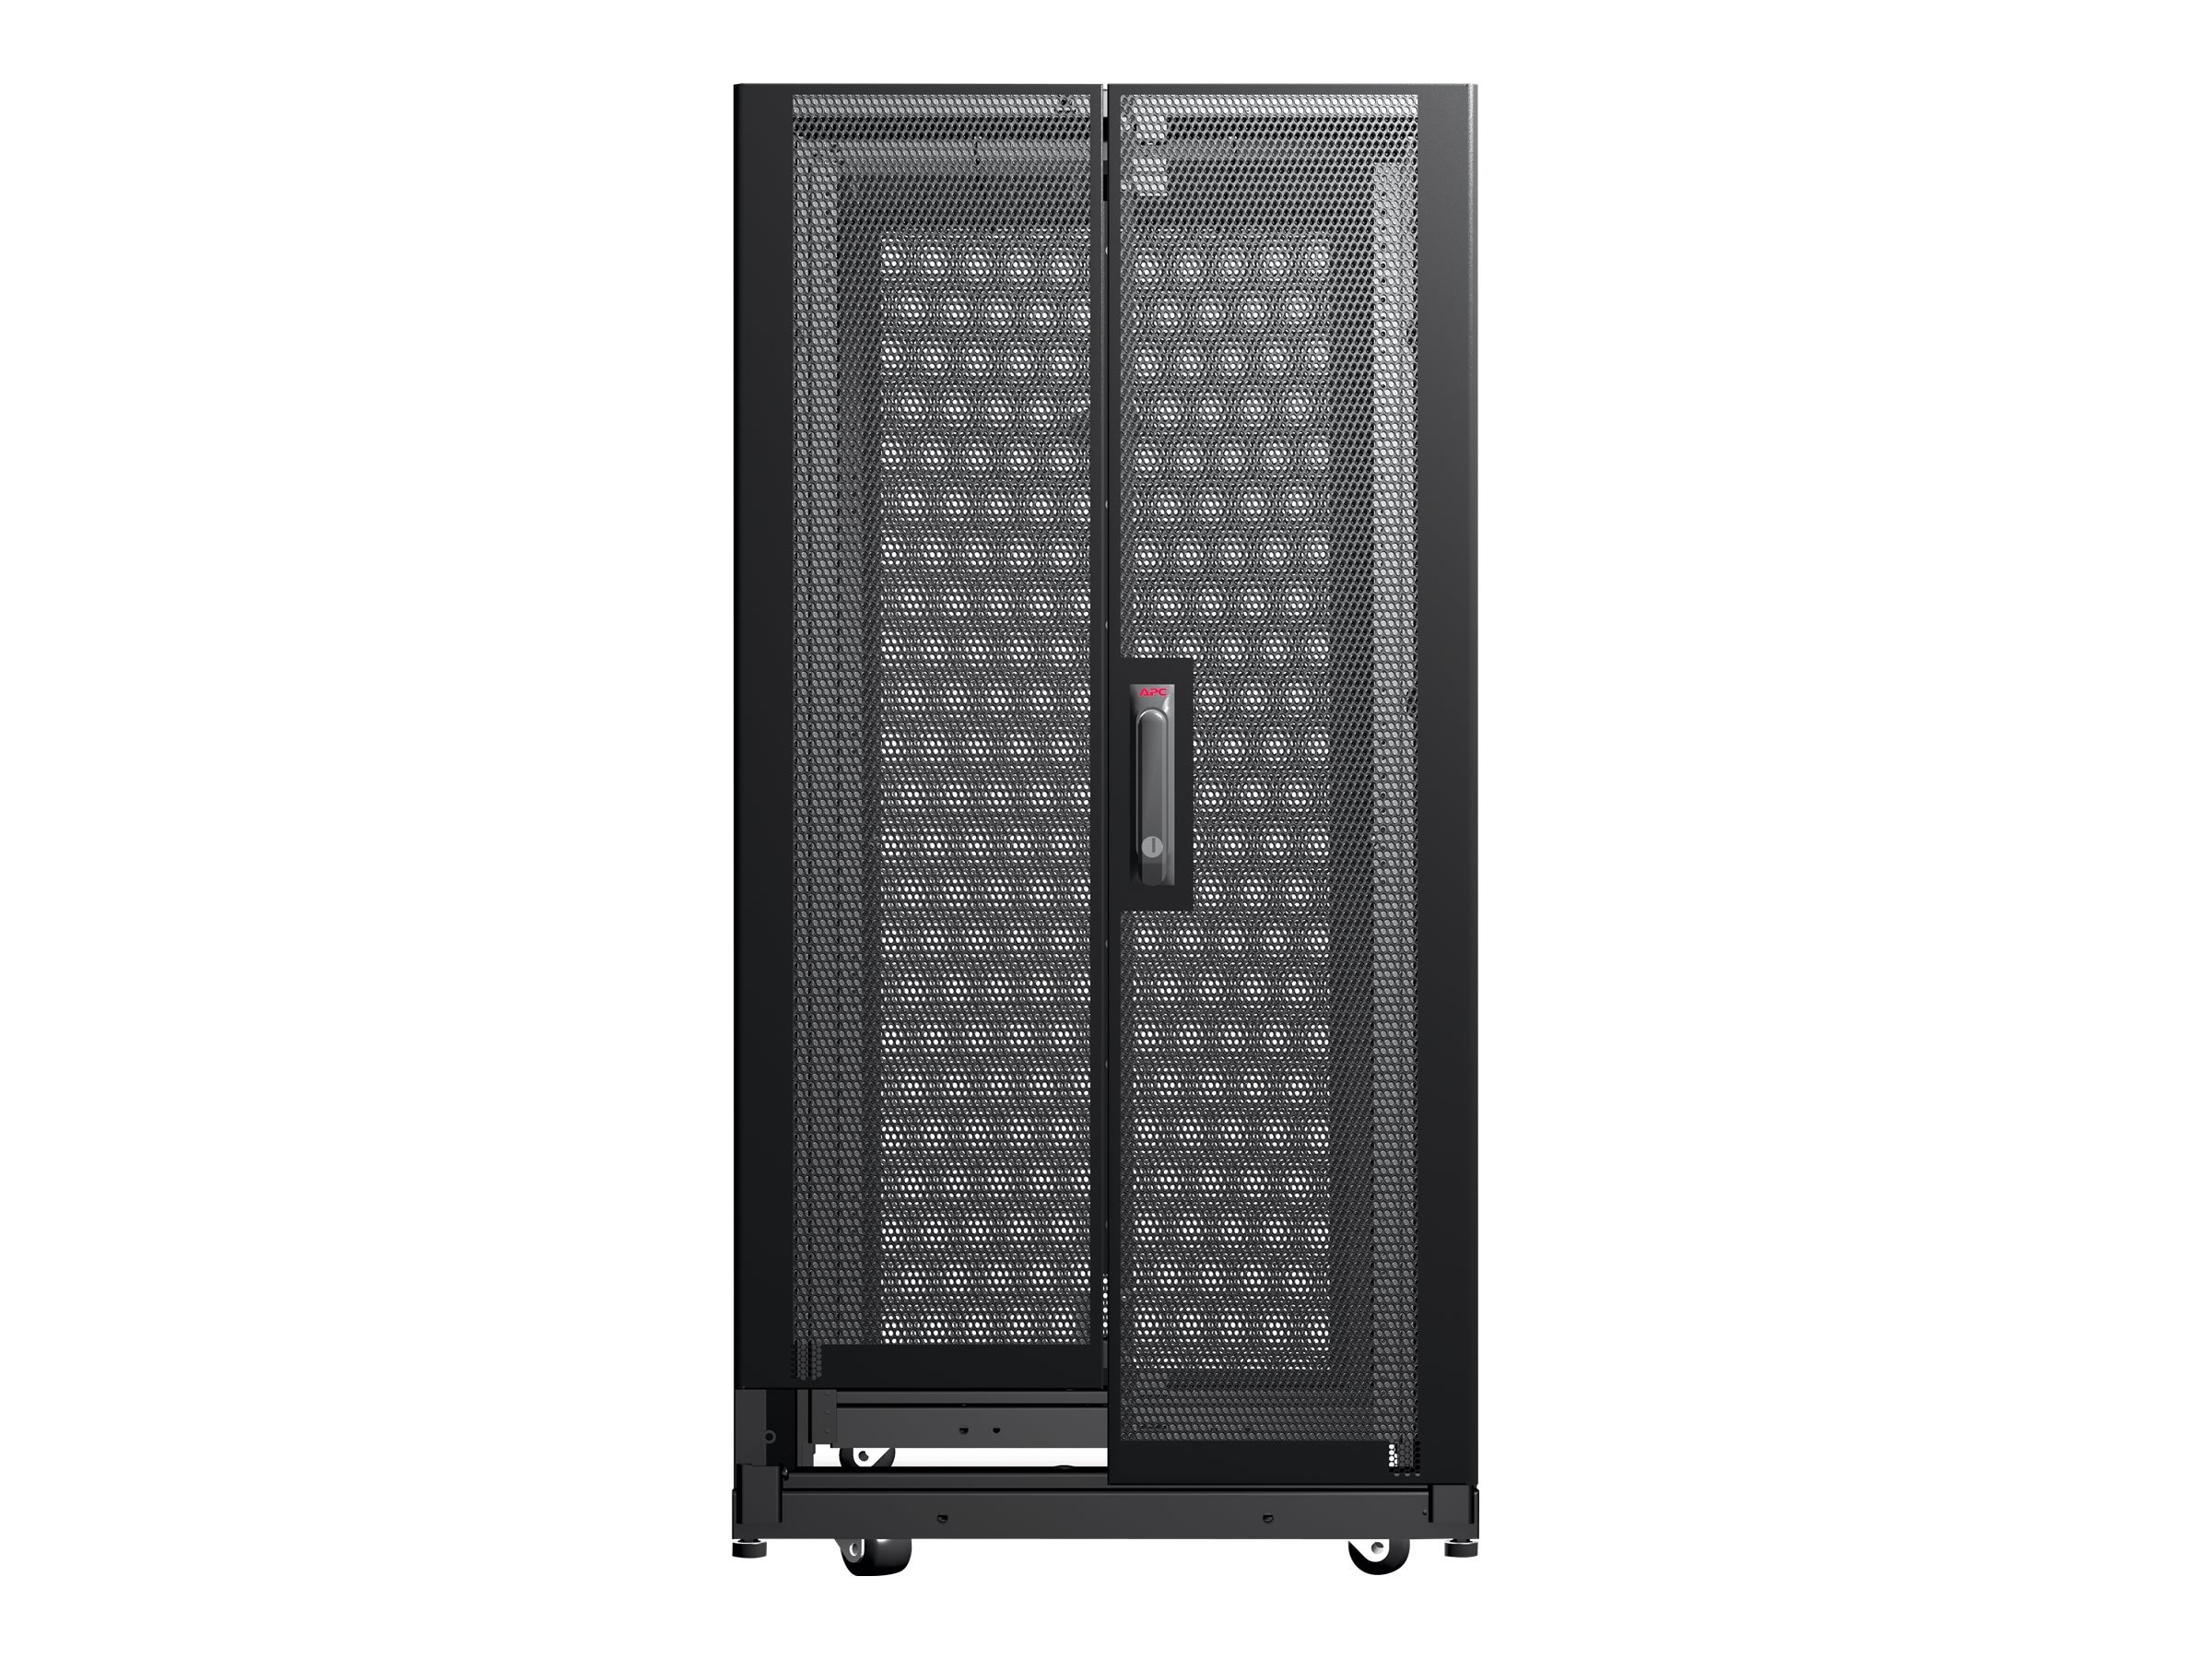 APC NetShelter AV 24U 600mm W x 825mm D Enclosure, Sides, 10-32 Threaded Rails, Black, AR3814